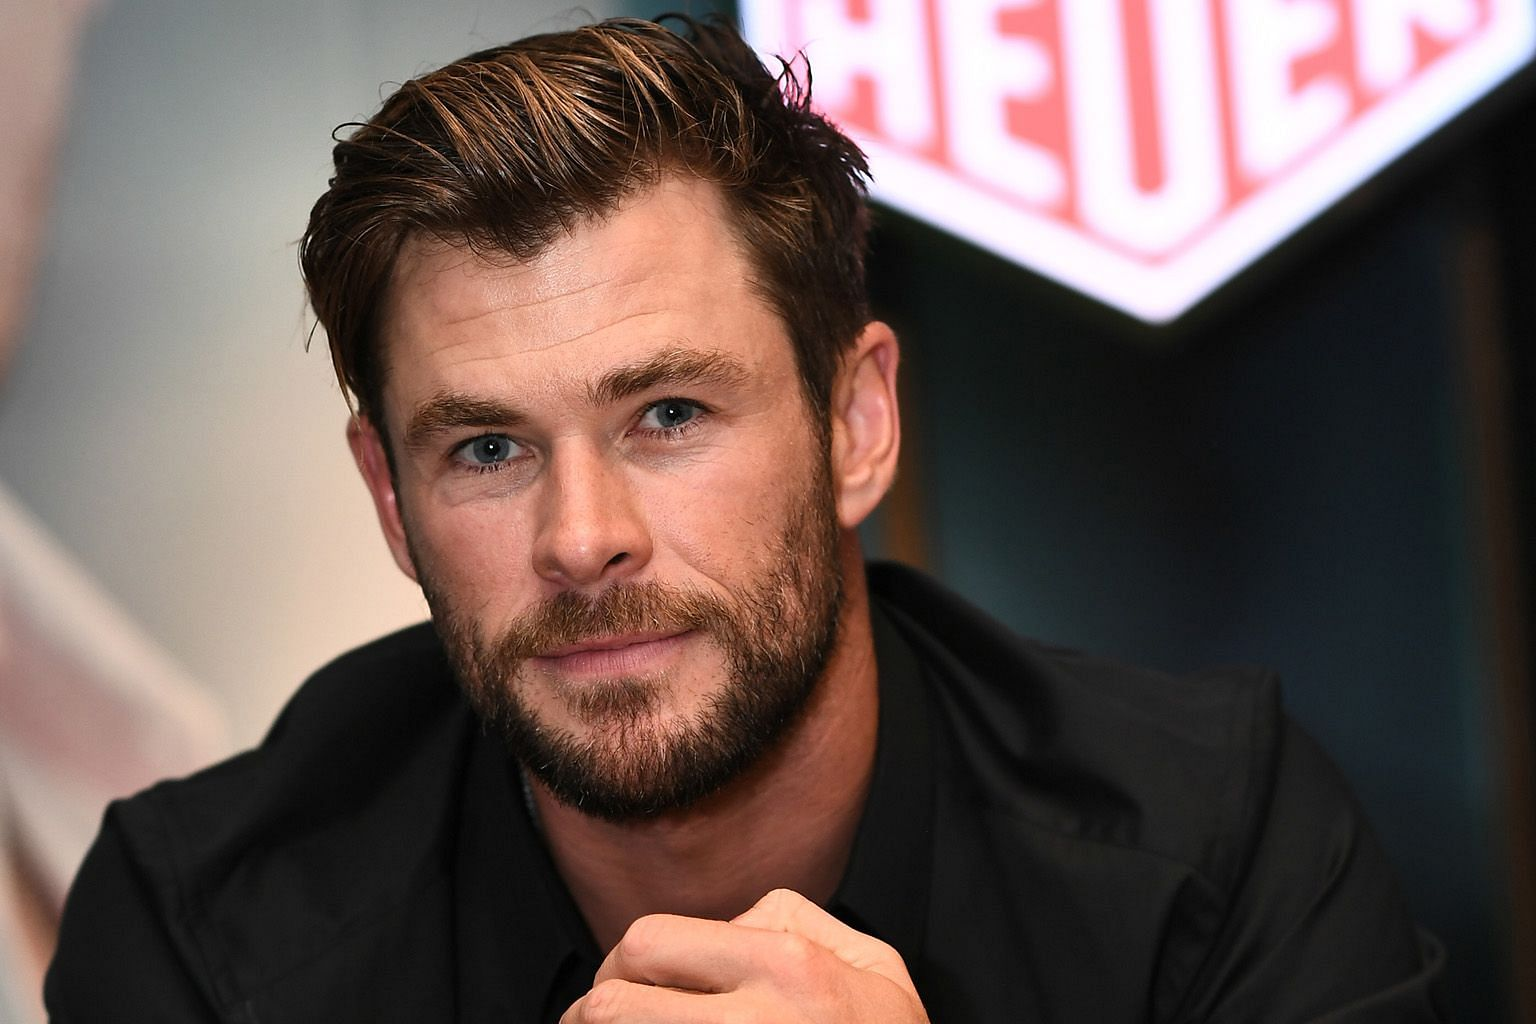 In 2013, Chris Hemsworth was given a Tag Heuer watch by Ron Howard, who directed him in Rush, a motorsport film, and he became the brand's international ambassador in 2015.